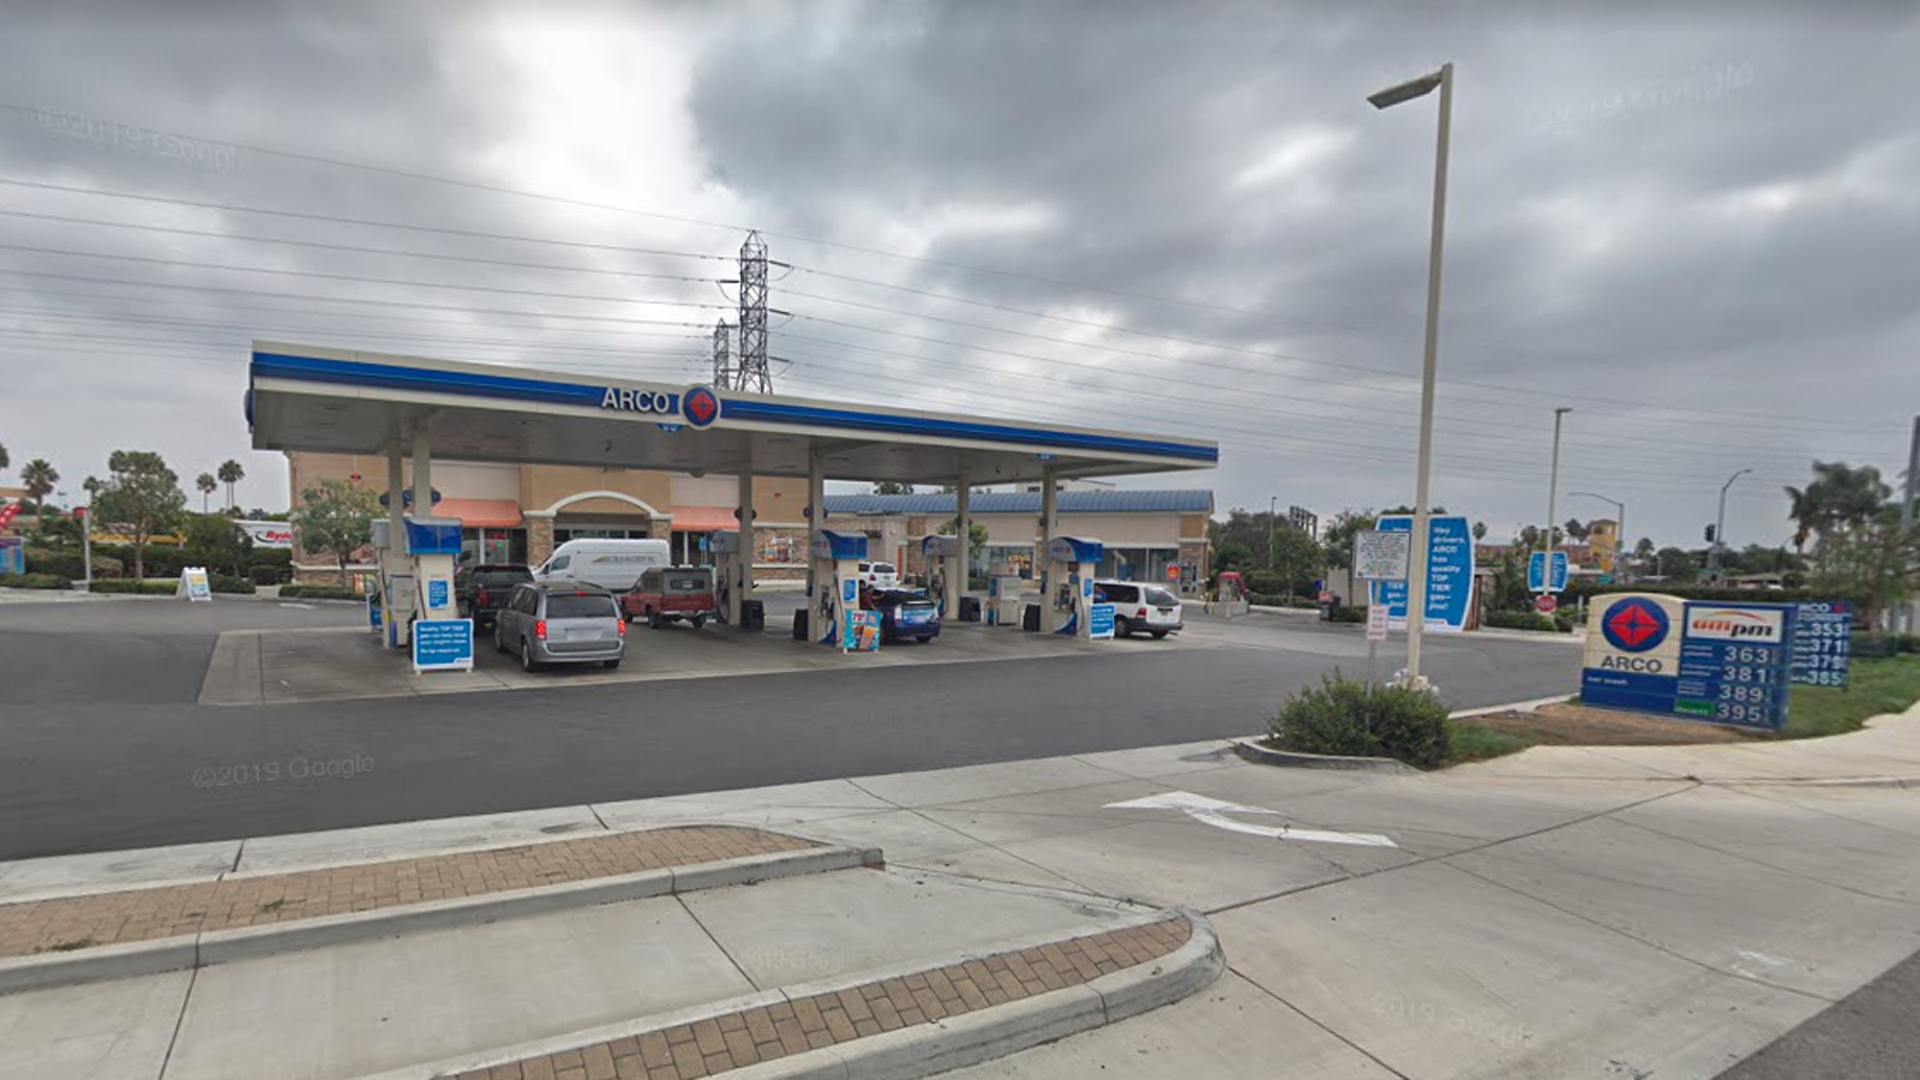 An ARCO gas station at 5669 Valentine Road in Ventura, as seen in a Google Street View image in November of 2018.